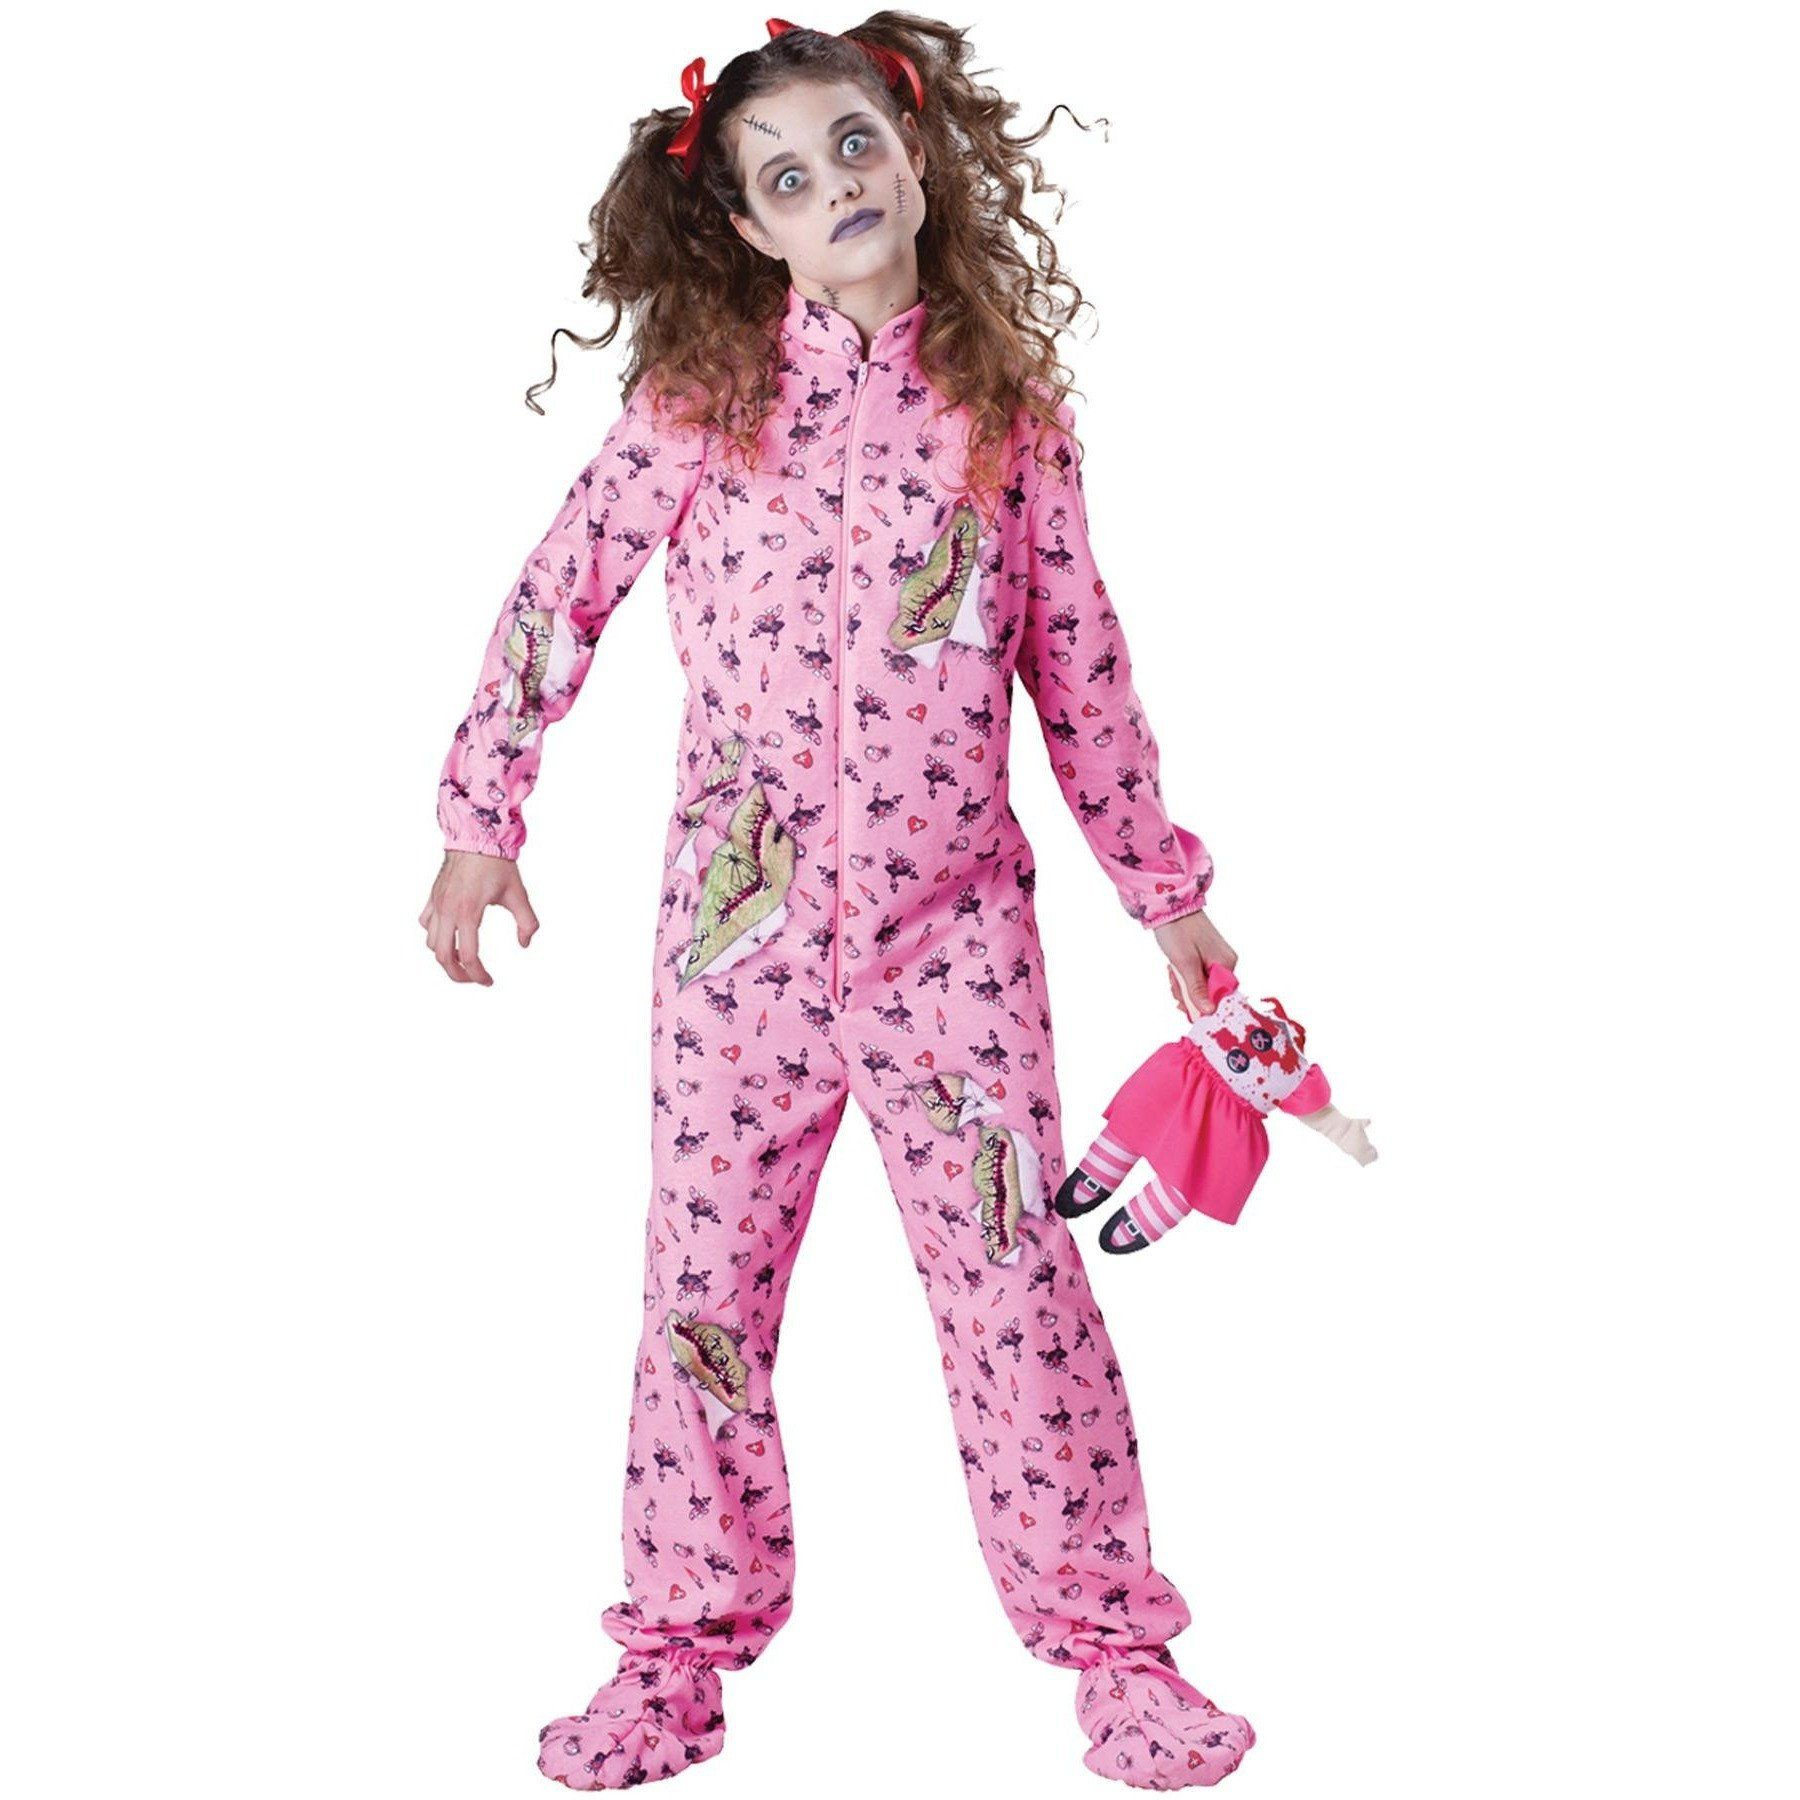 jumpsuit with zombie print and headless doll. hair ribbons and